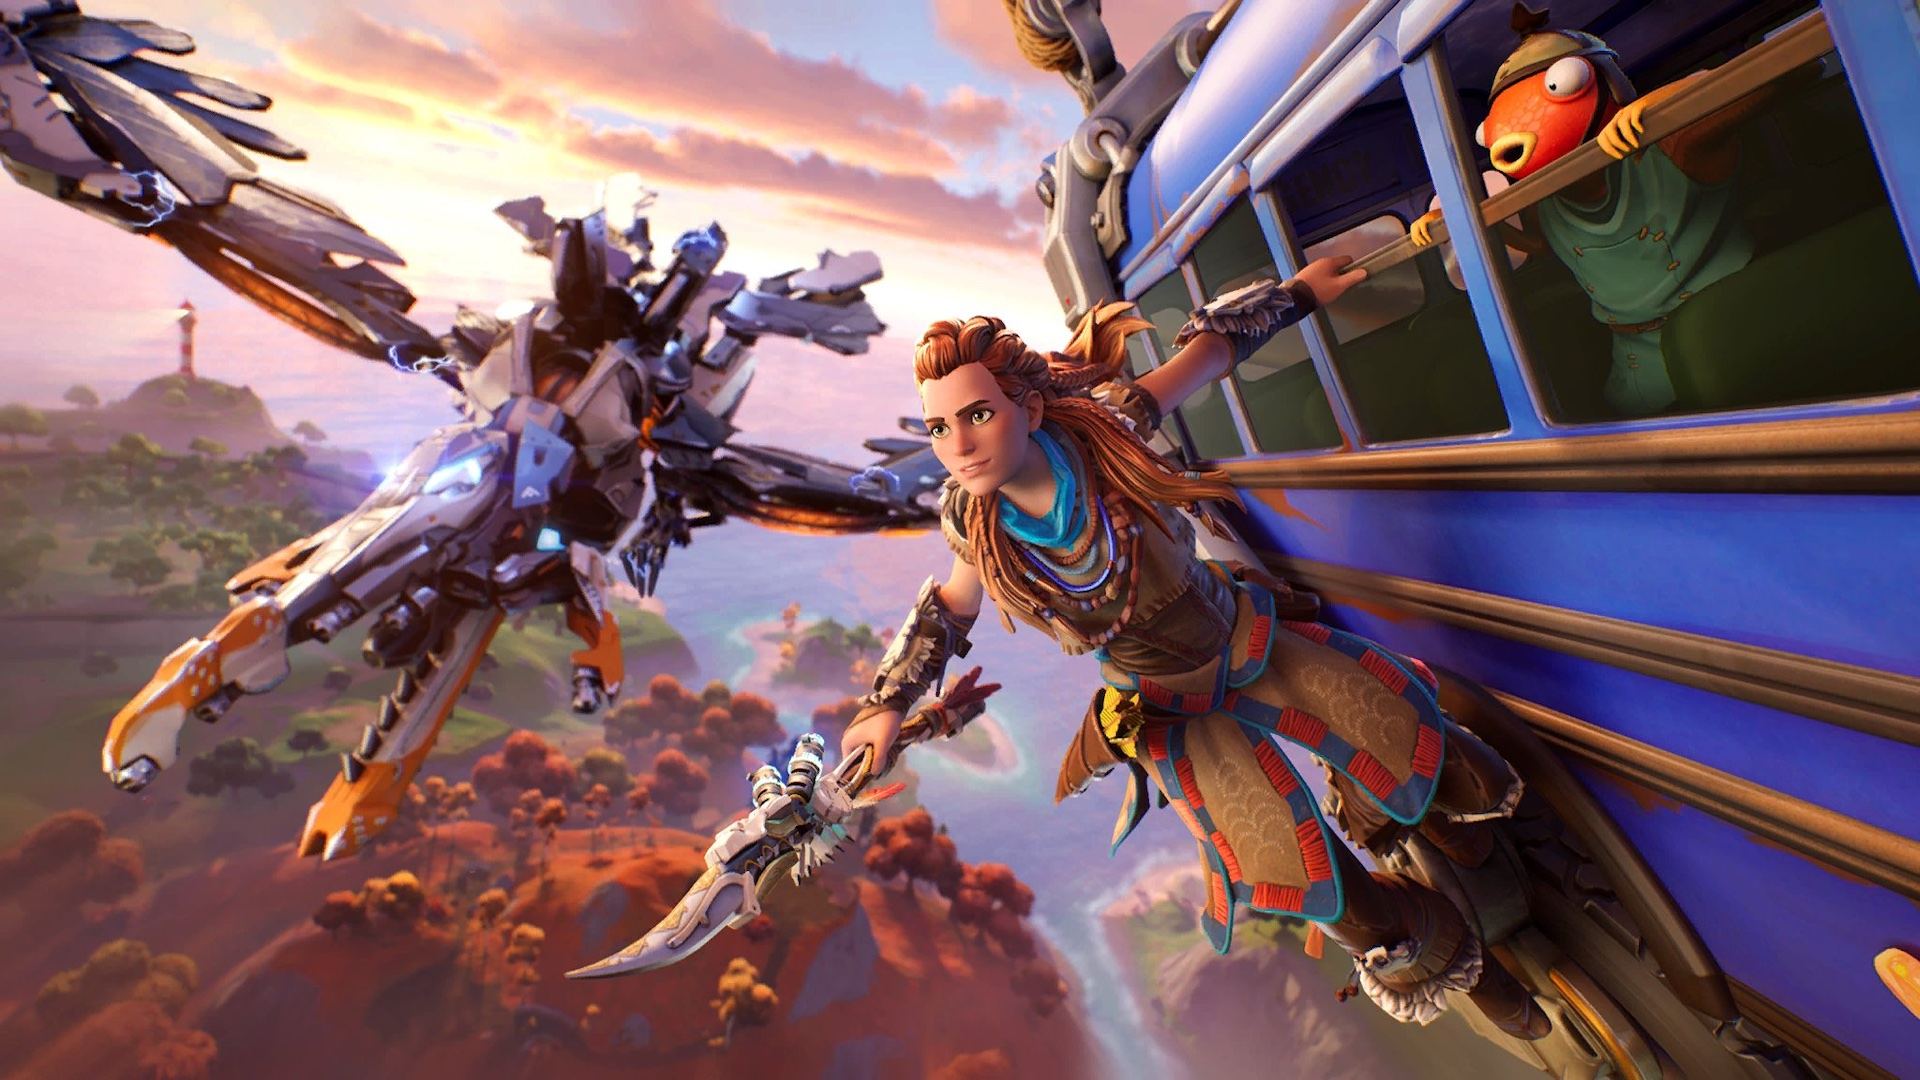 Aloy riding the Fortnite battle bus